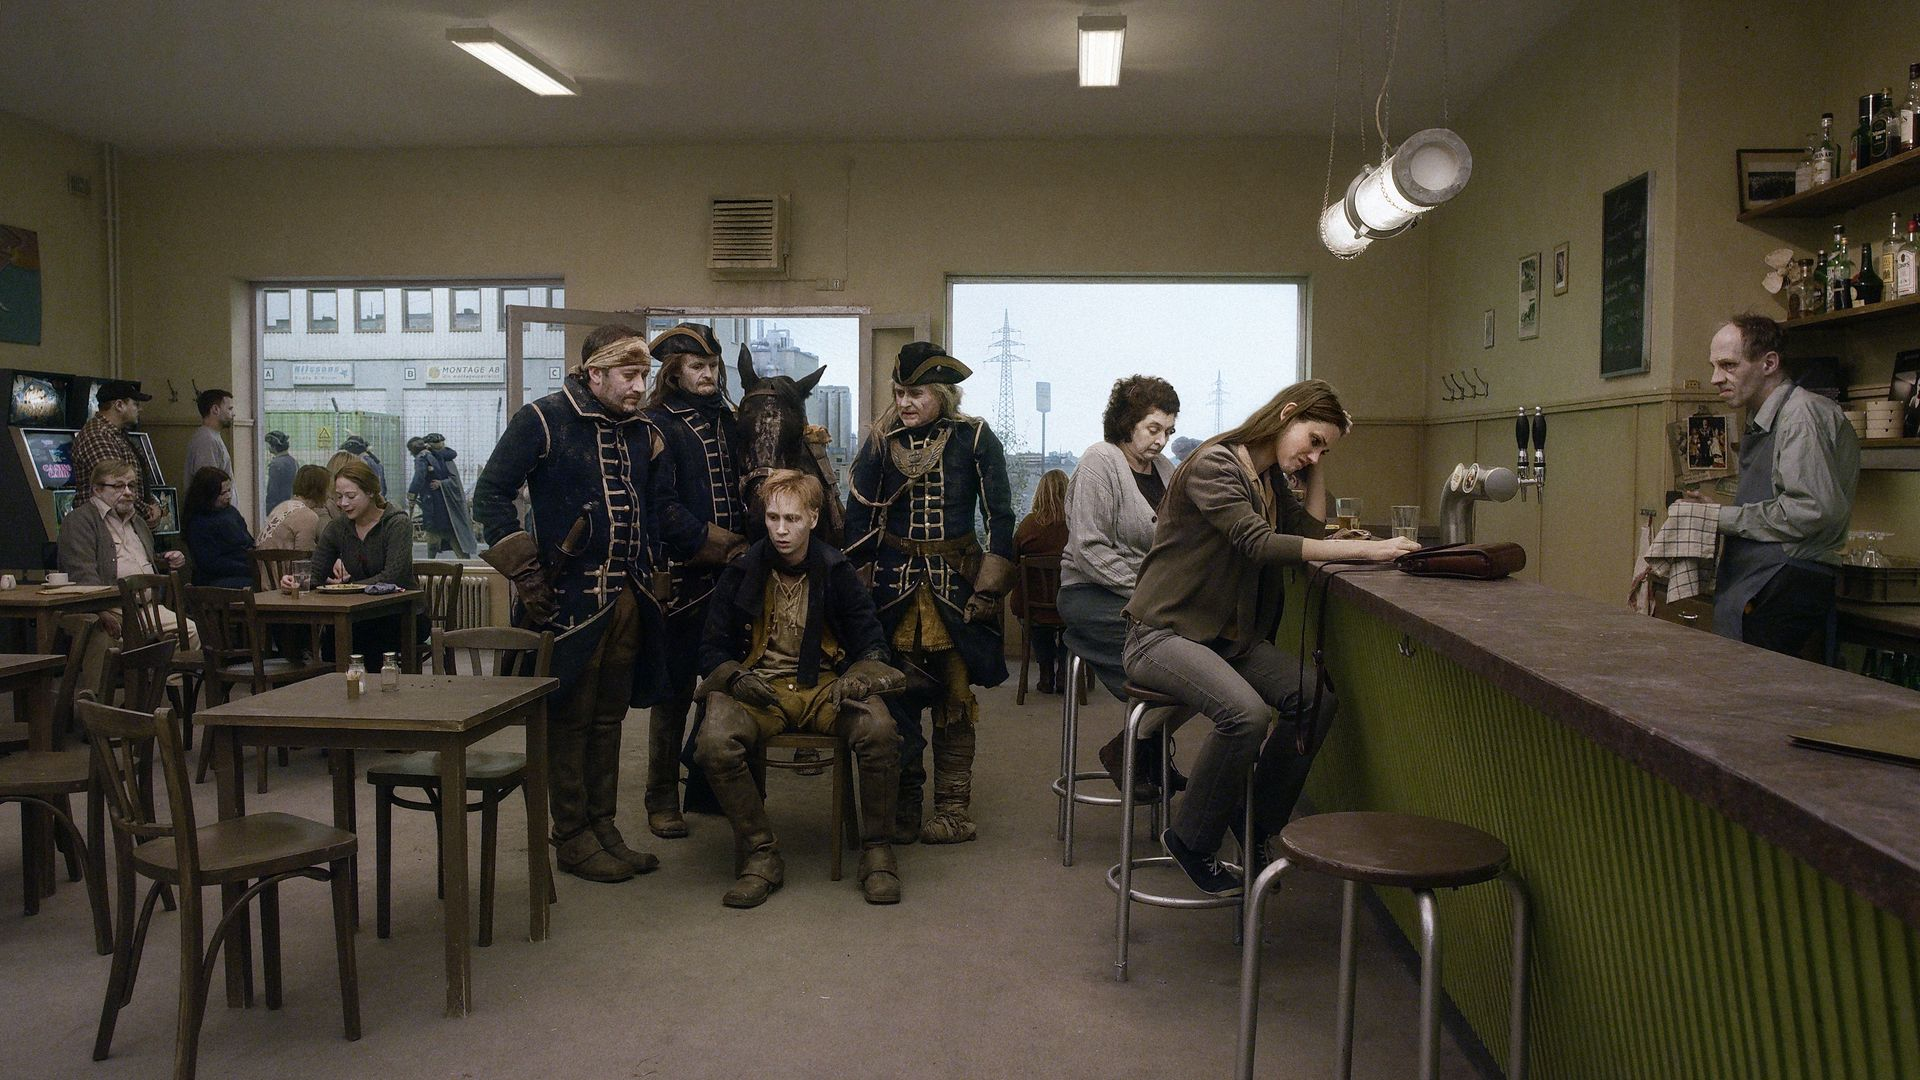 King Charles XII's army find themselves in a present-day cafe in A Pigeon Sat on a Branch Reflecting on Existence - Credit: Studio 24